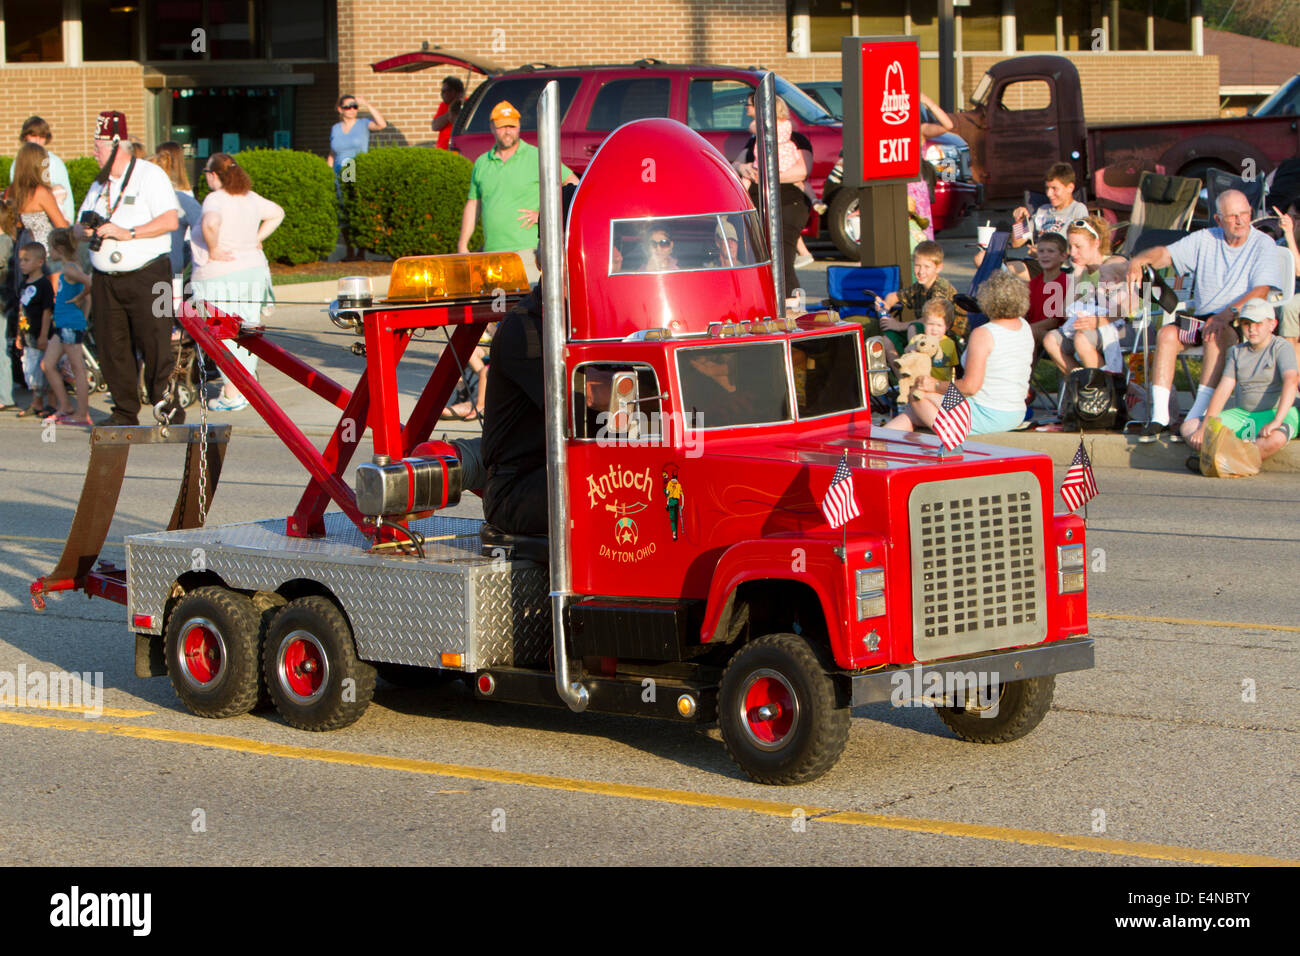 Miniature tow truck in a parade used by the shriners for their performances stock